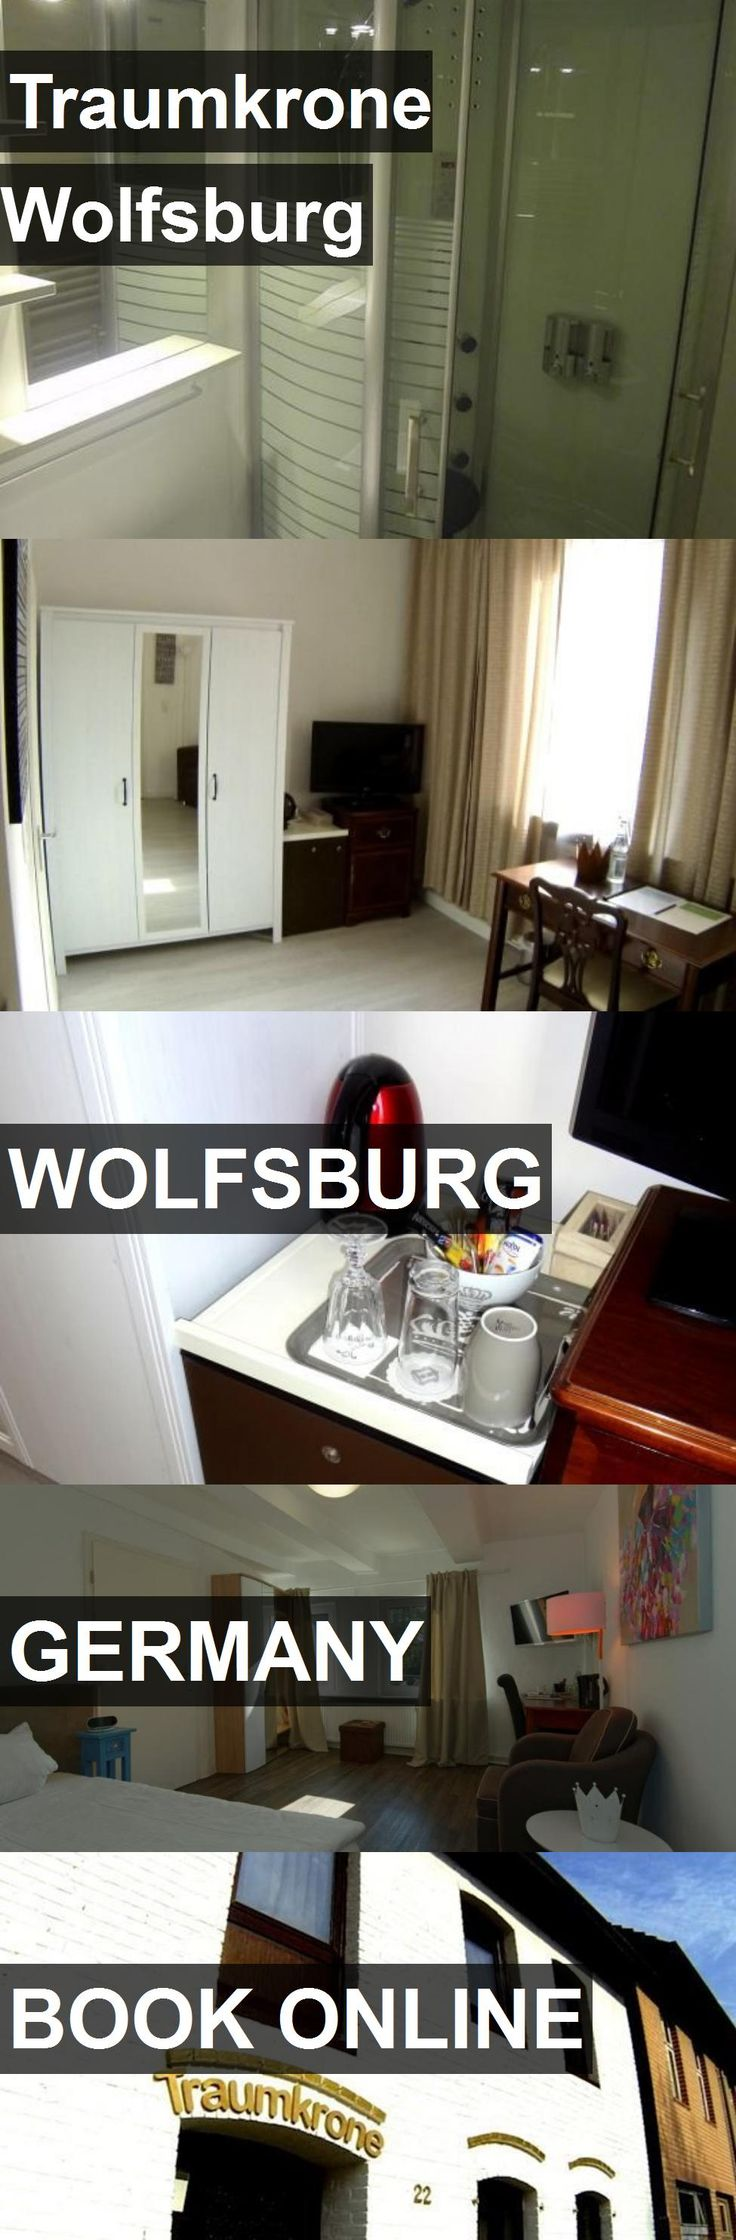 Hotel Traumkrone Wolfsburg in Wolfsburg, Germany. For more information, photos, reviews and best prices please follow the link. #Germany #Wolfsburg #travel #vacation #hotel